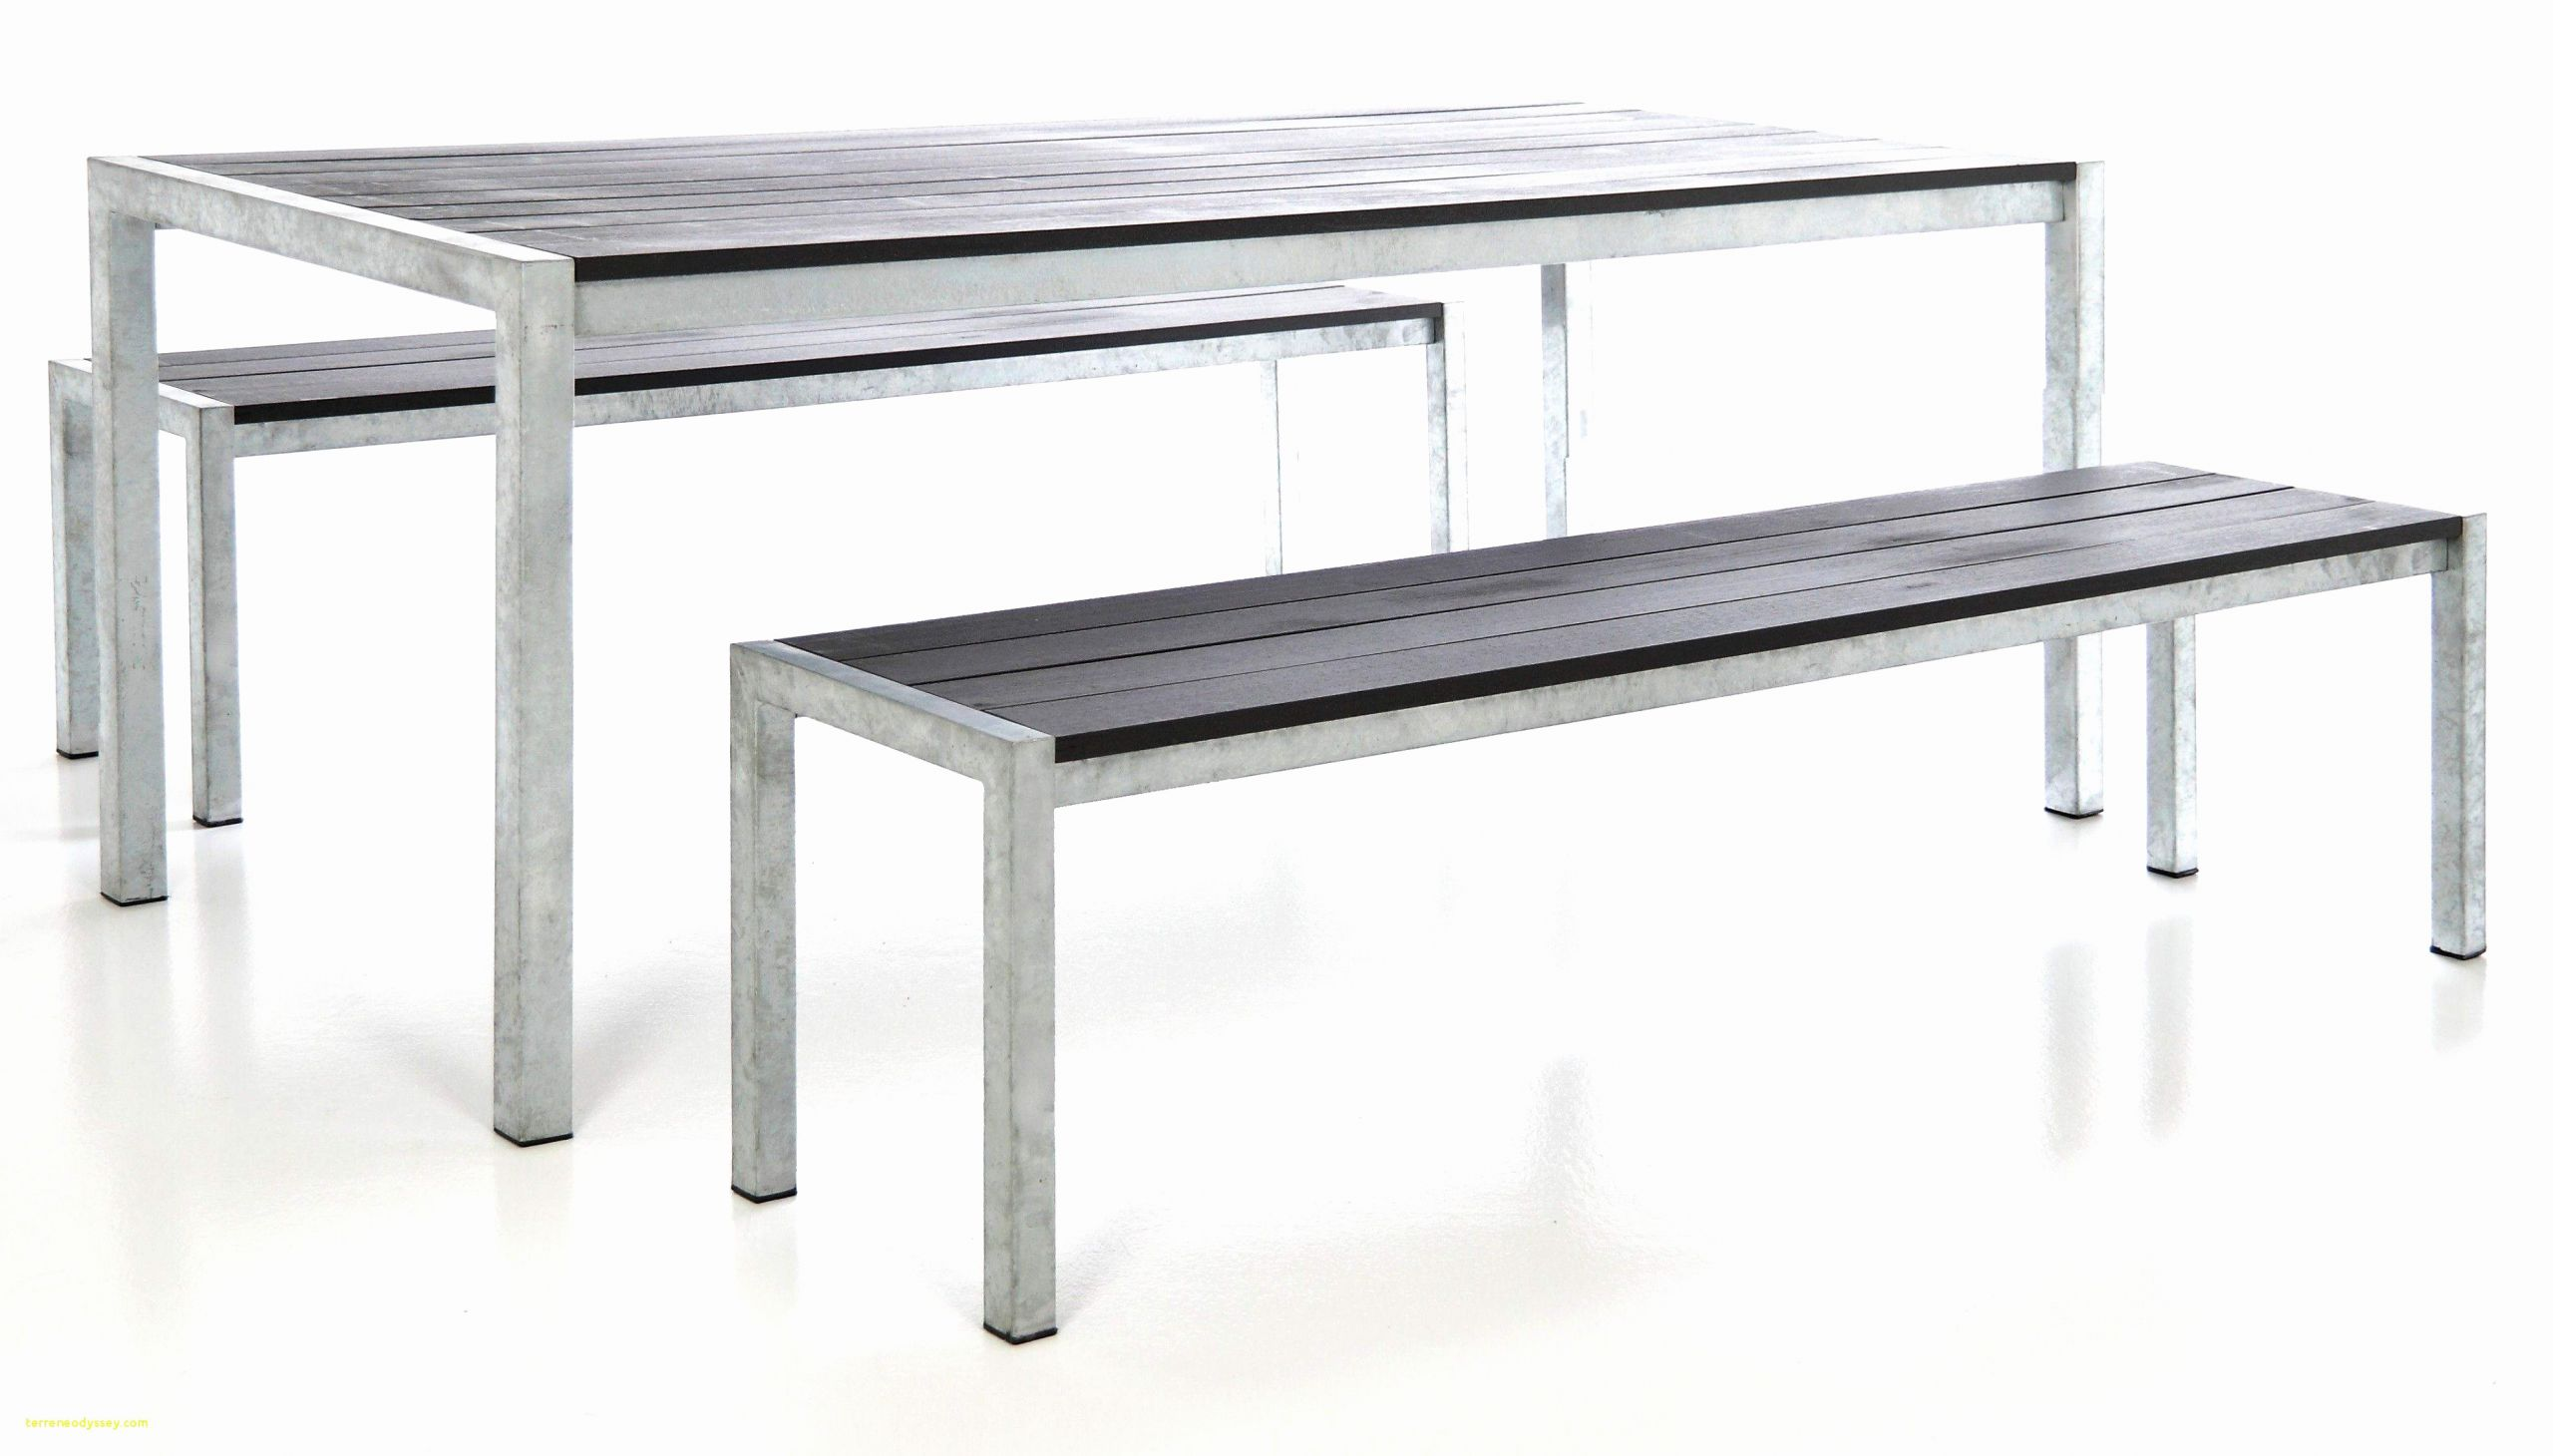 table basse teck nouveau chaise metalique table basse metal ronde chaise coquille 0d archives of table basse teck